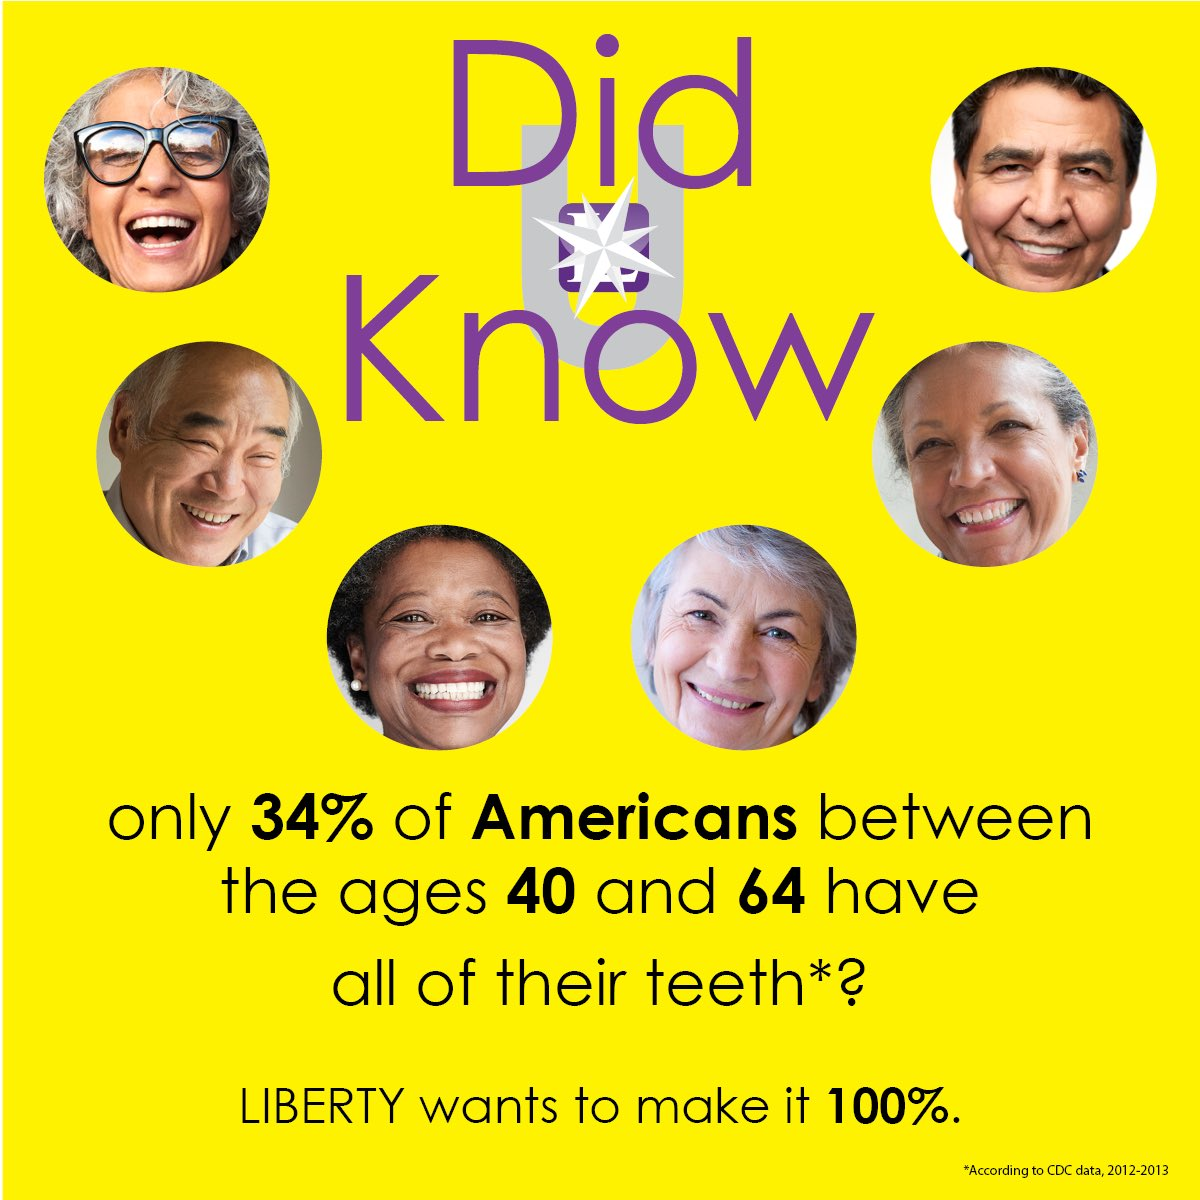 With proper care and regular visits to the dentist, your teeth should last a lifetime.   Have you seen your dentist lately? Let LIBERTY help you get one scheduled! #Dentist #dental #healthy #health #HealthForAll https://t.co/b9lAECwh70